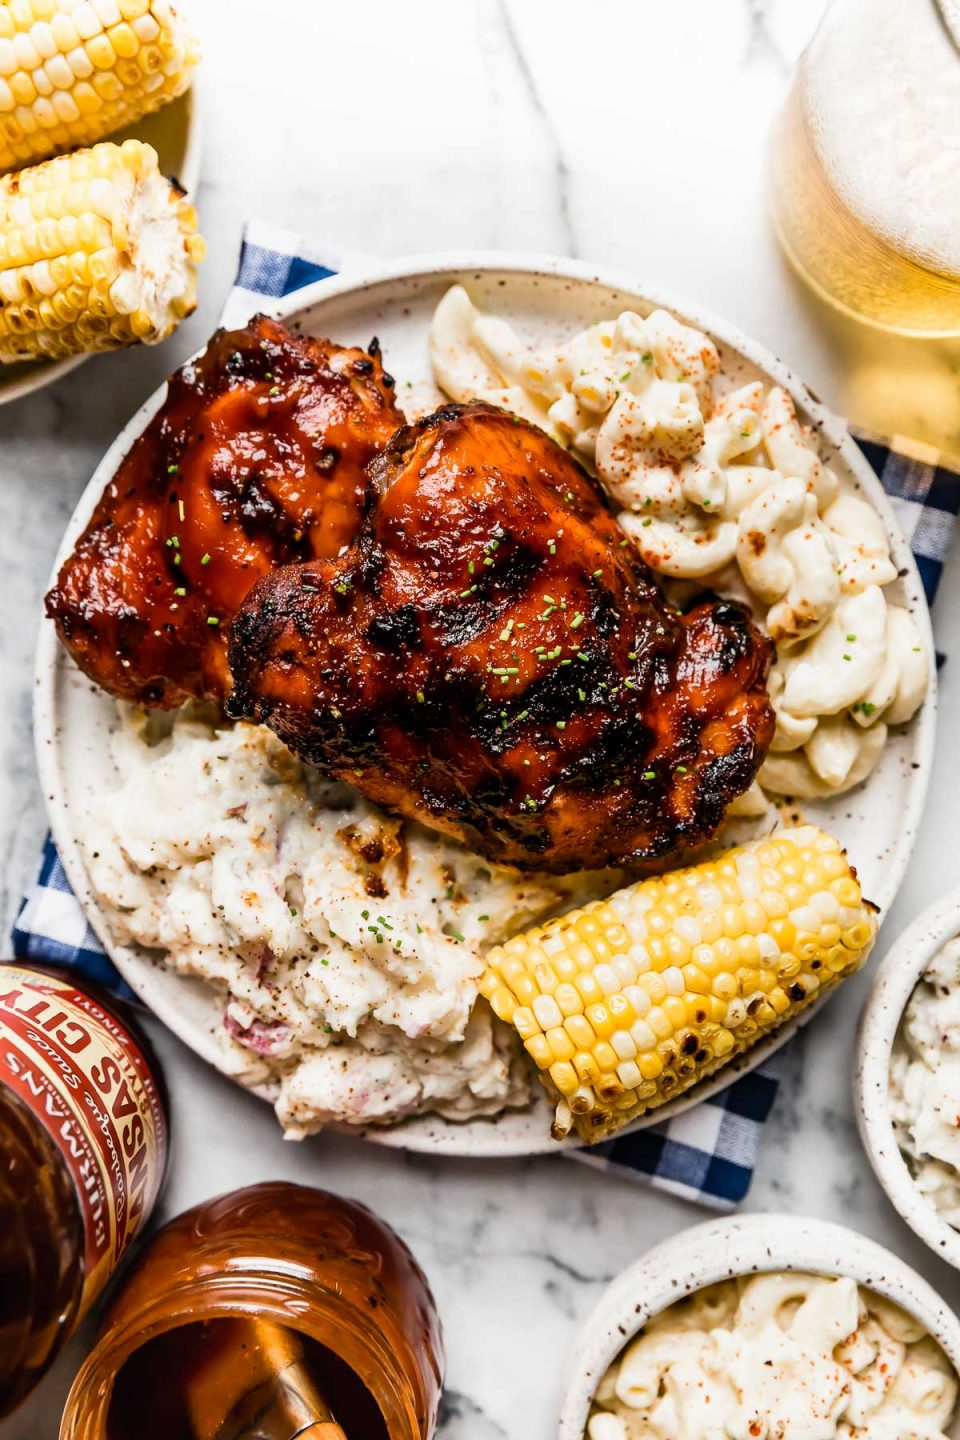 Grilled BBQ chicken on a plate with macaroni salad, potato salad, & corn on the cob. The plate is surrounded by more side dishes, extra BBQ sauce & a glass of beer.